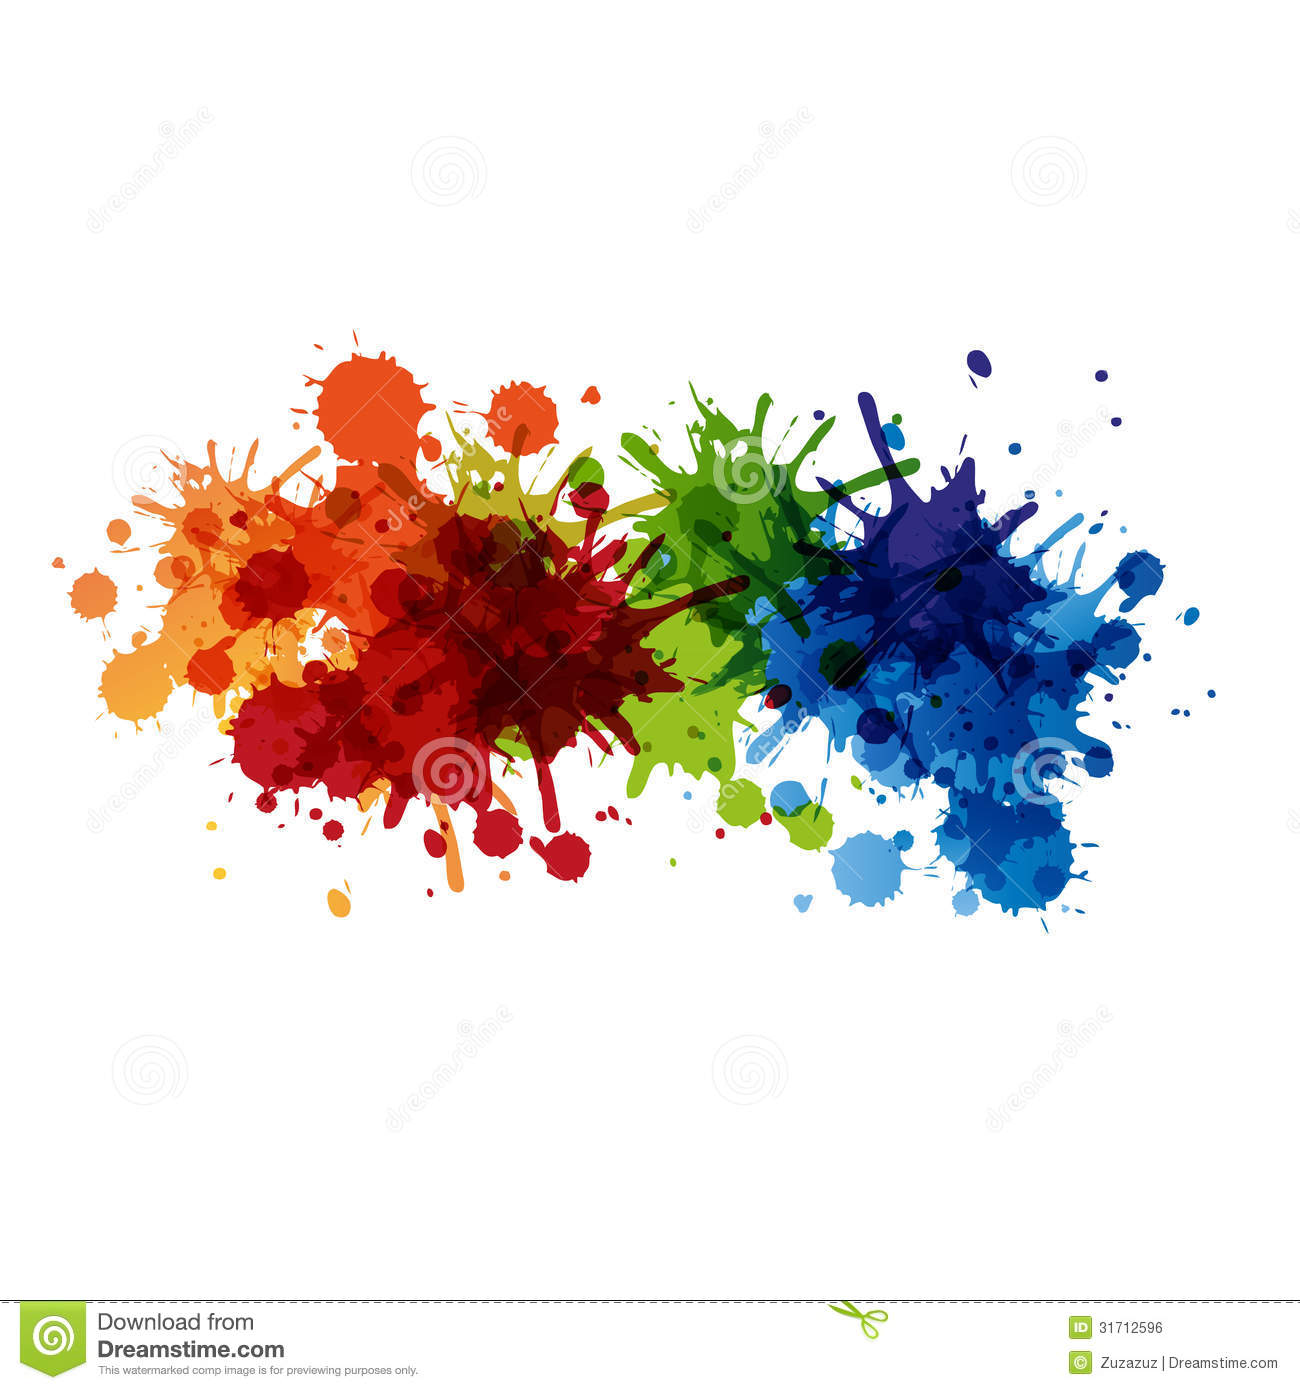 Paint background design royalty free stock image image for Designs to paint